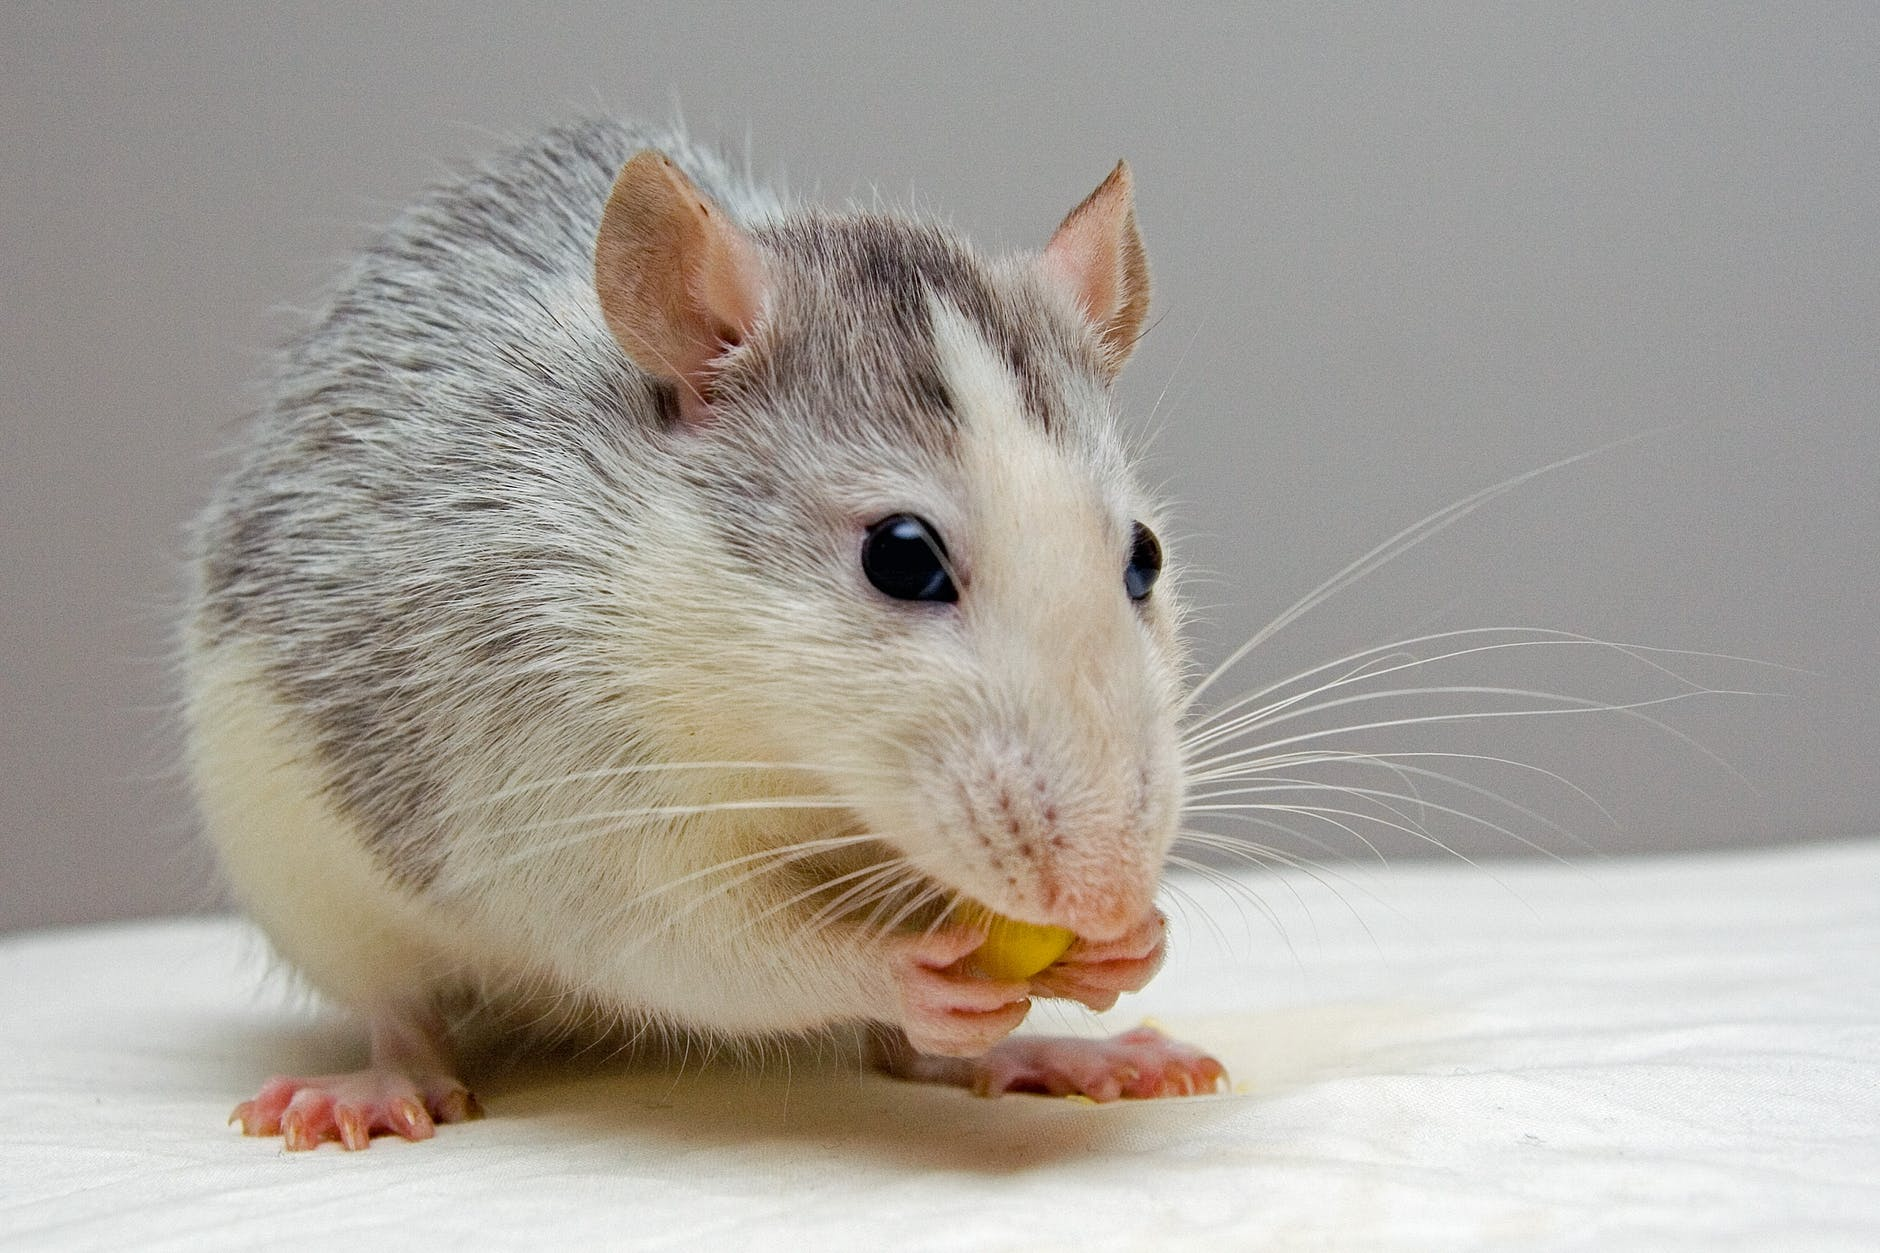 What do mice eat